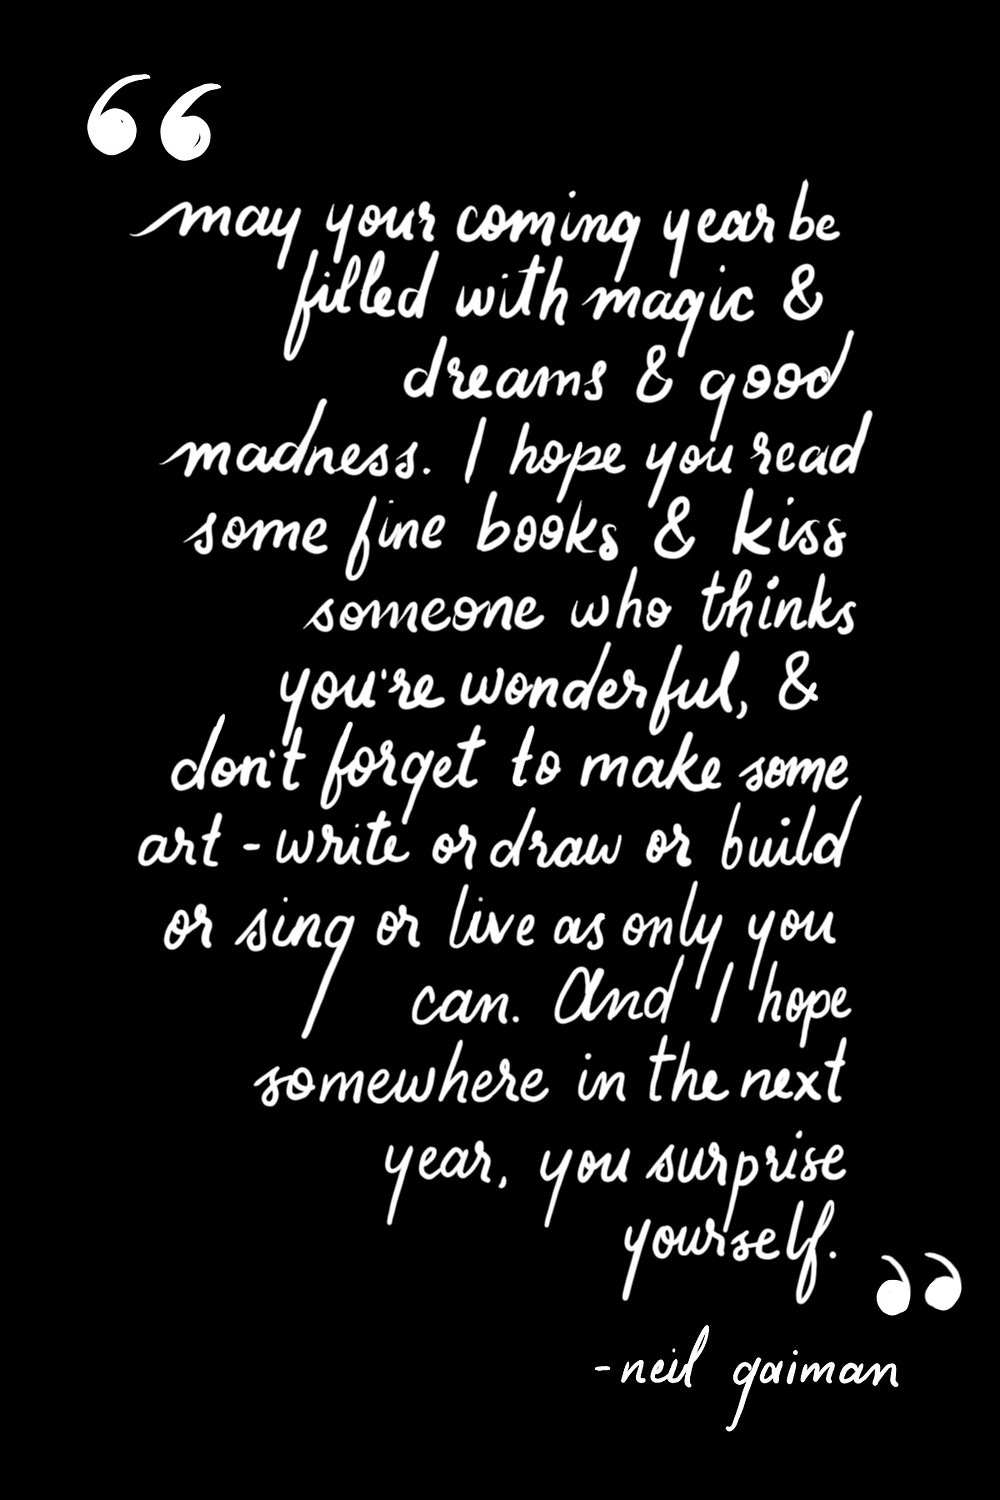 hand lettered quote from Neil Gaiman